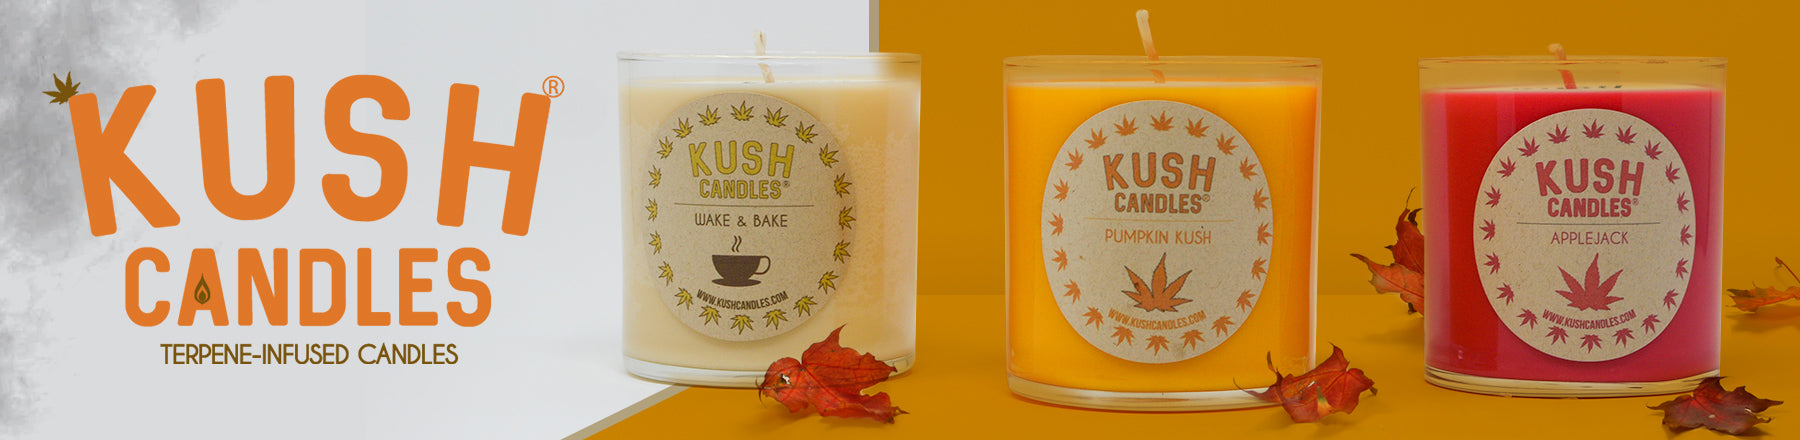 Fall Pumpkin Apple and Cinnamon Kush Candles On Sale Free Shipping